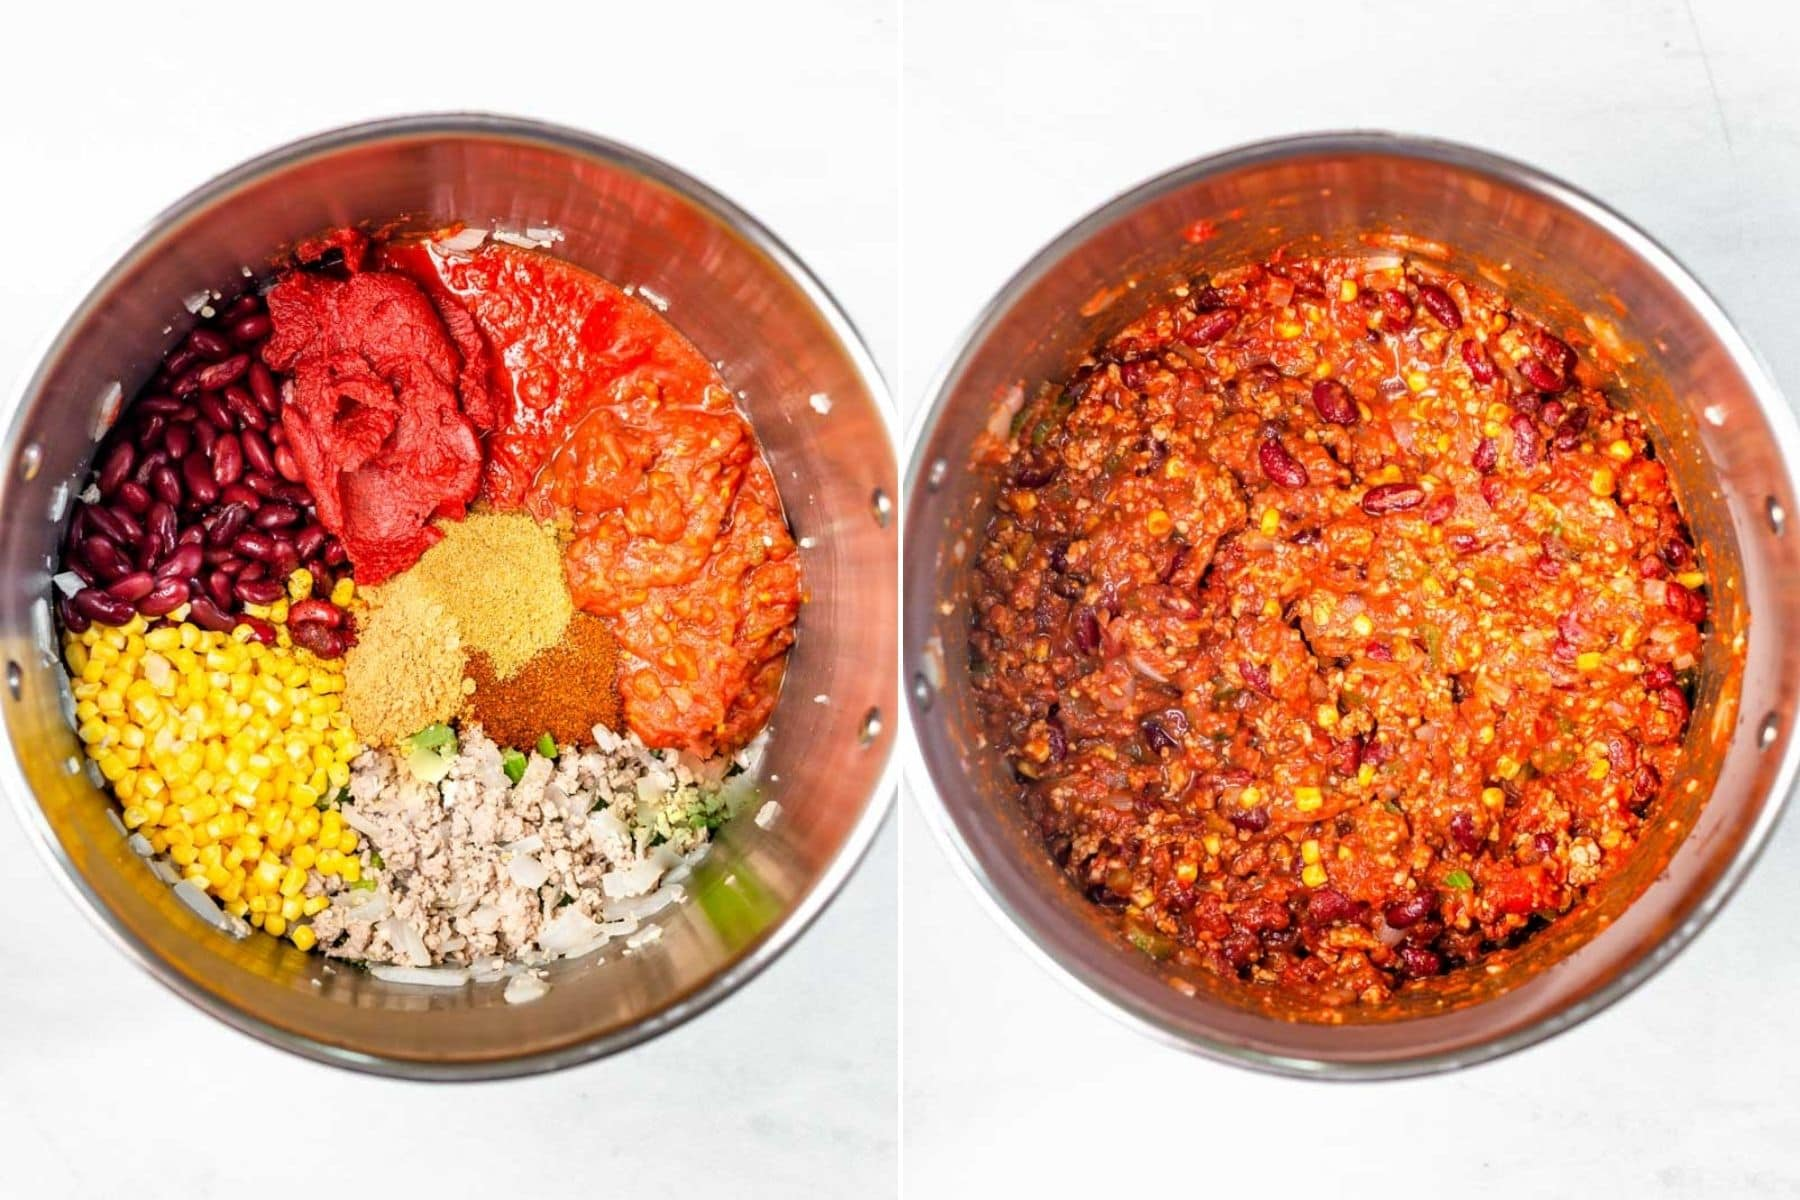 Collage of all the ingredients for chili in a pot with each ingredient separate and all the ingredients stirred together.